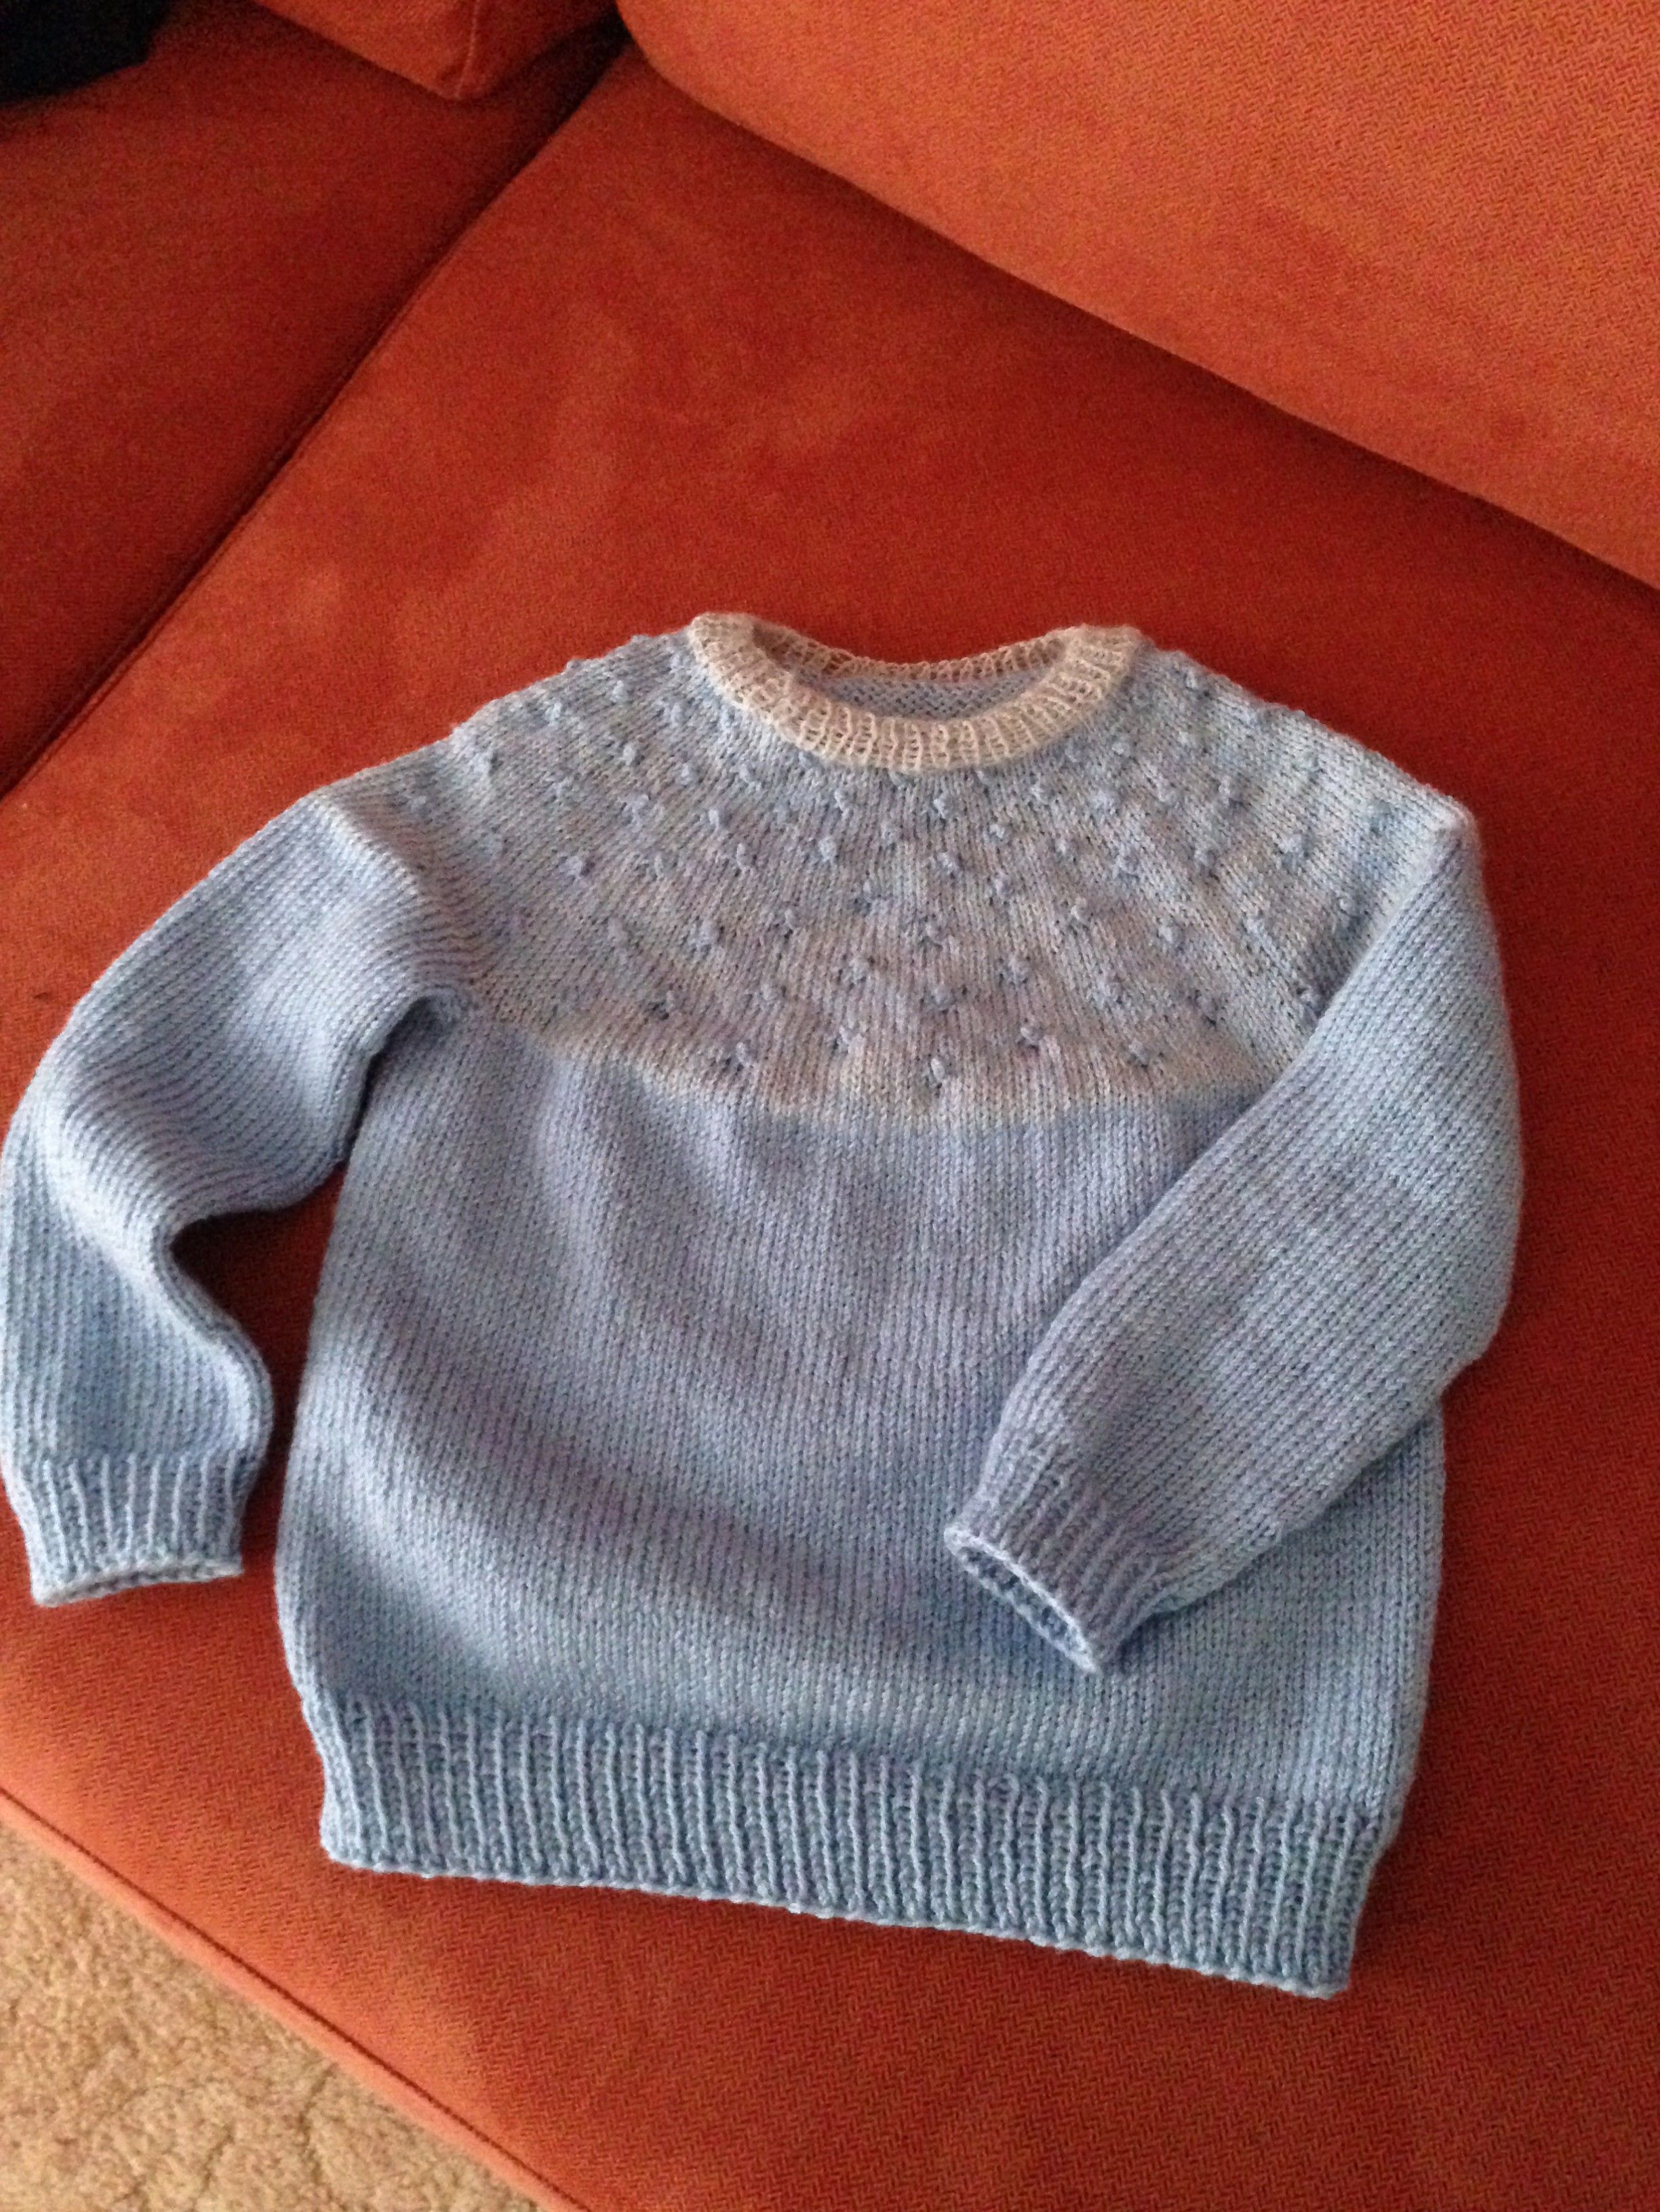 Knitting Patterns For Sweaters On Circular Needles : circular needle knitting Gippsland Granny